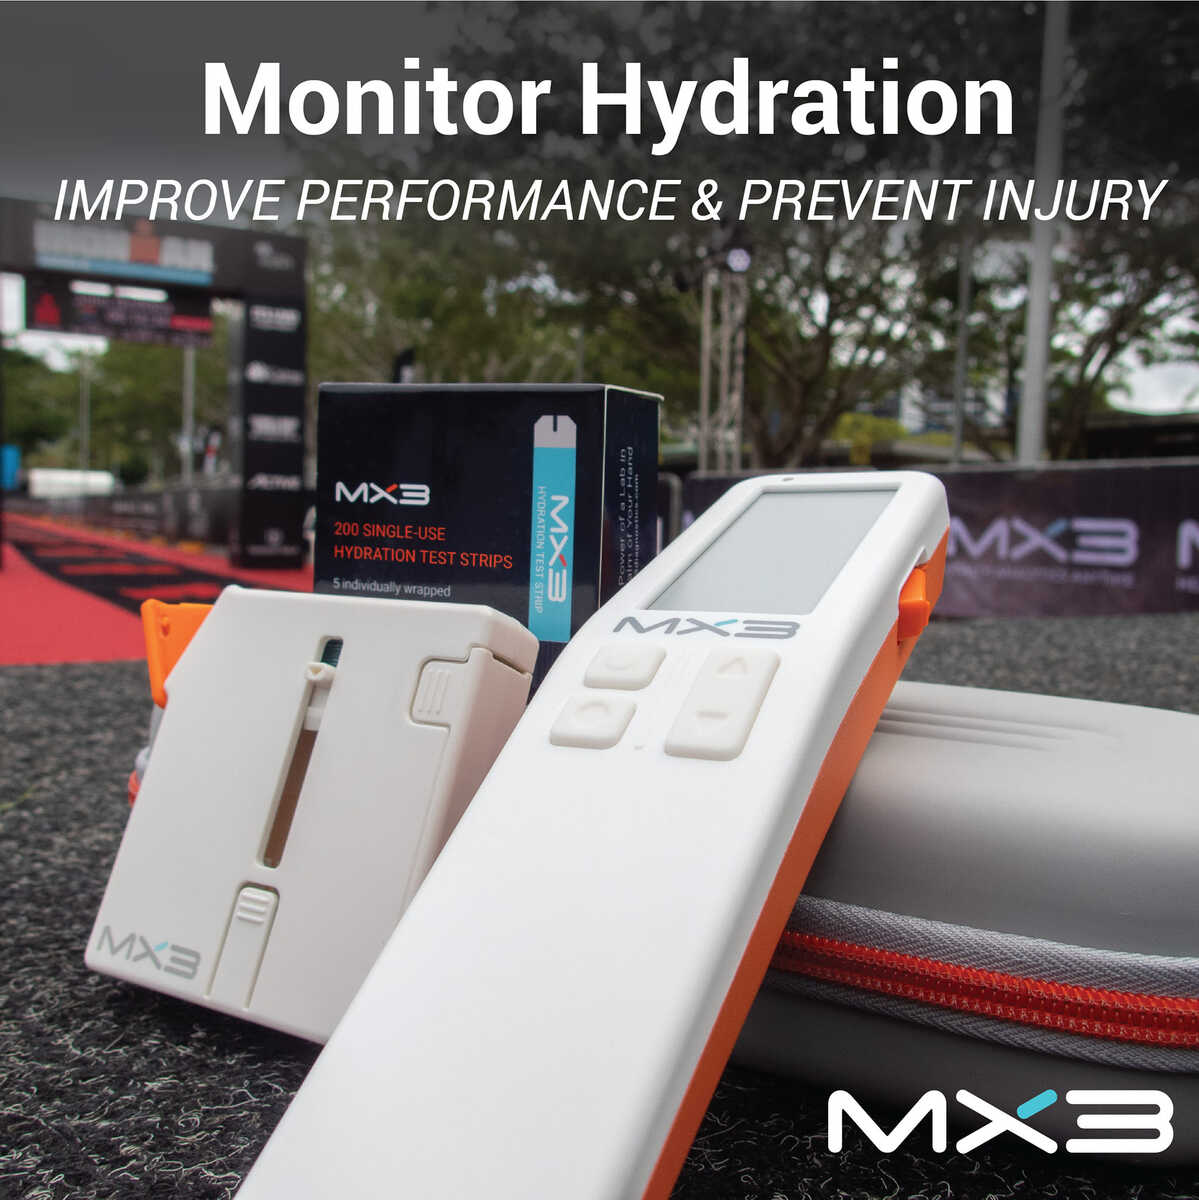 Improve Performance and Prevent Injury